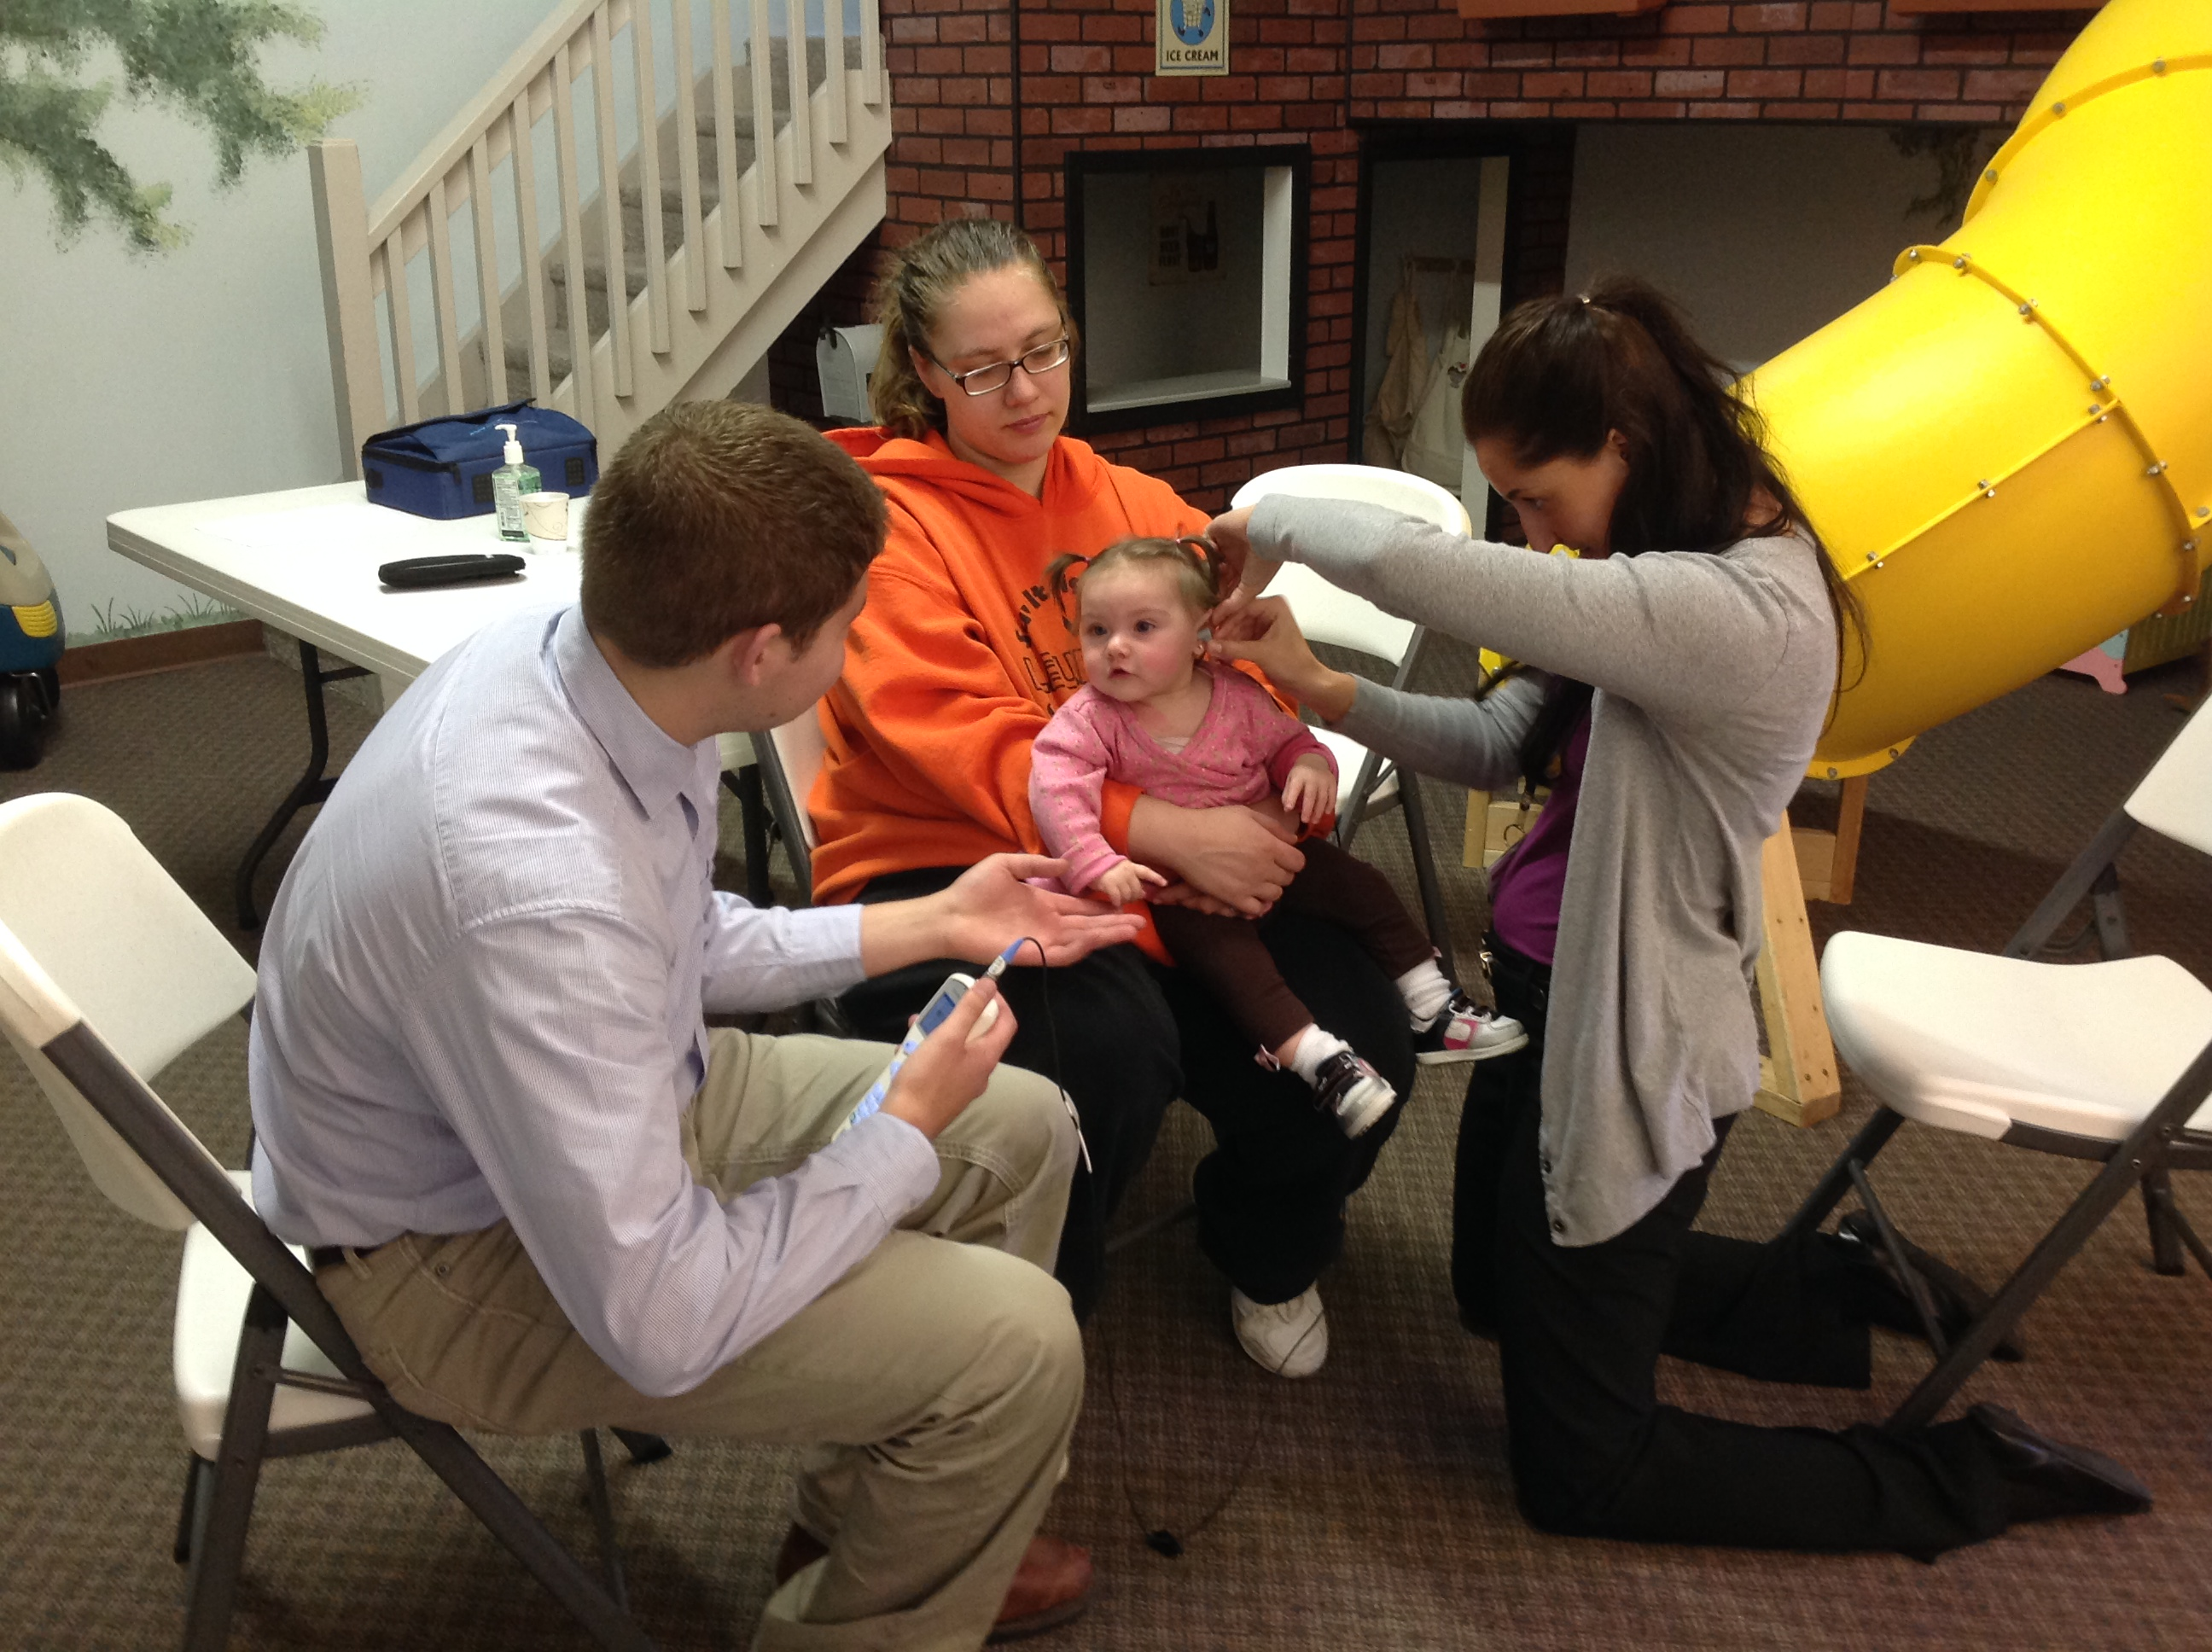 Au.D. students screening a child's hearing in the Early Head Start Program.